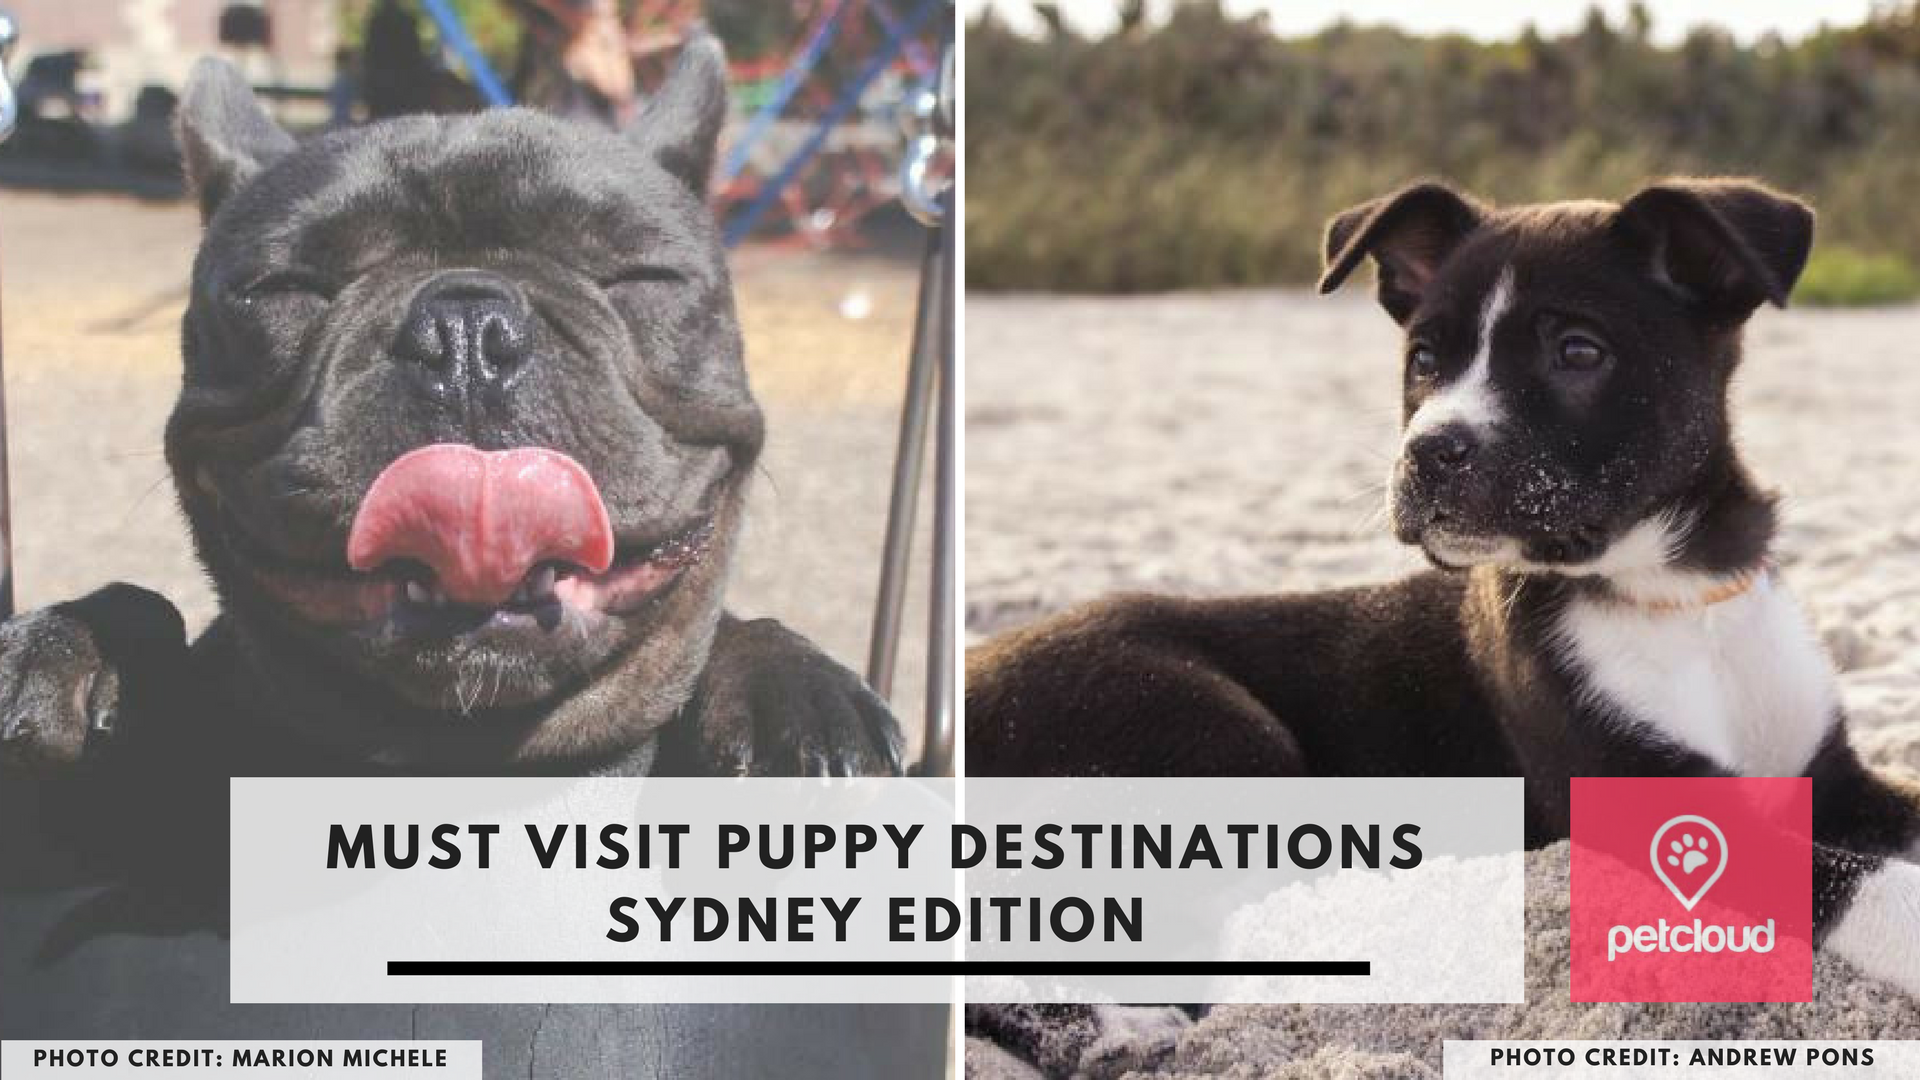 Must visit puppy destinations, Sydney, dog friendly parks, dog parks, dog friendly beaches, dog beaches, dog pubs, dog friendly pubs, dog cafes, dog friendly cafes, dog lovers, Petcloud blog article image